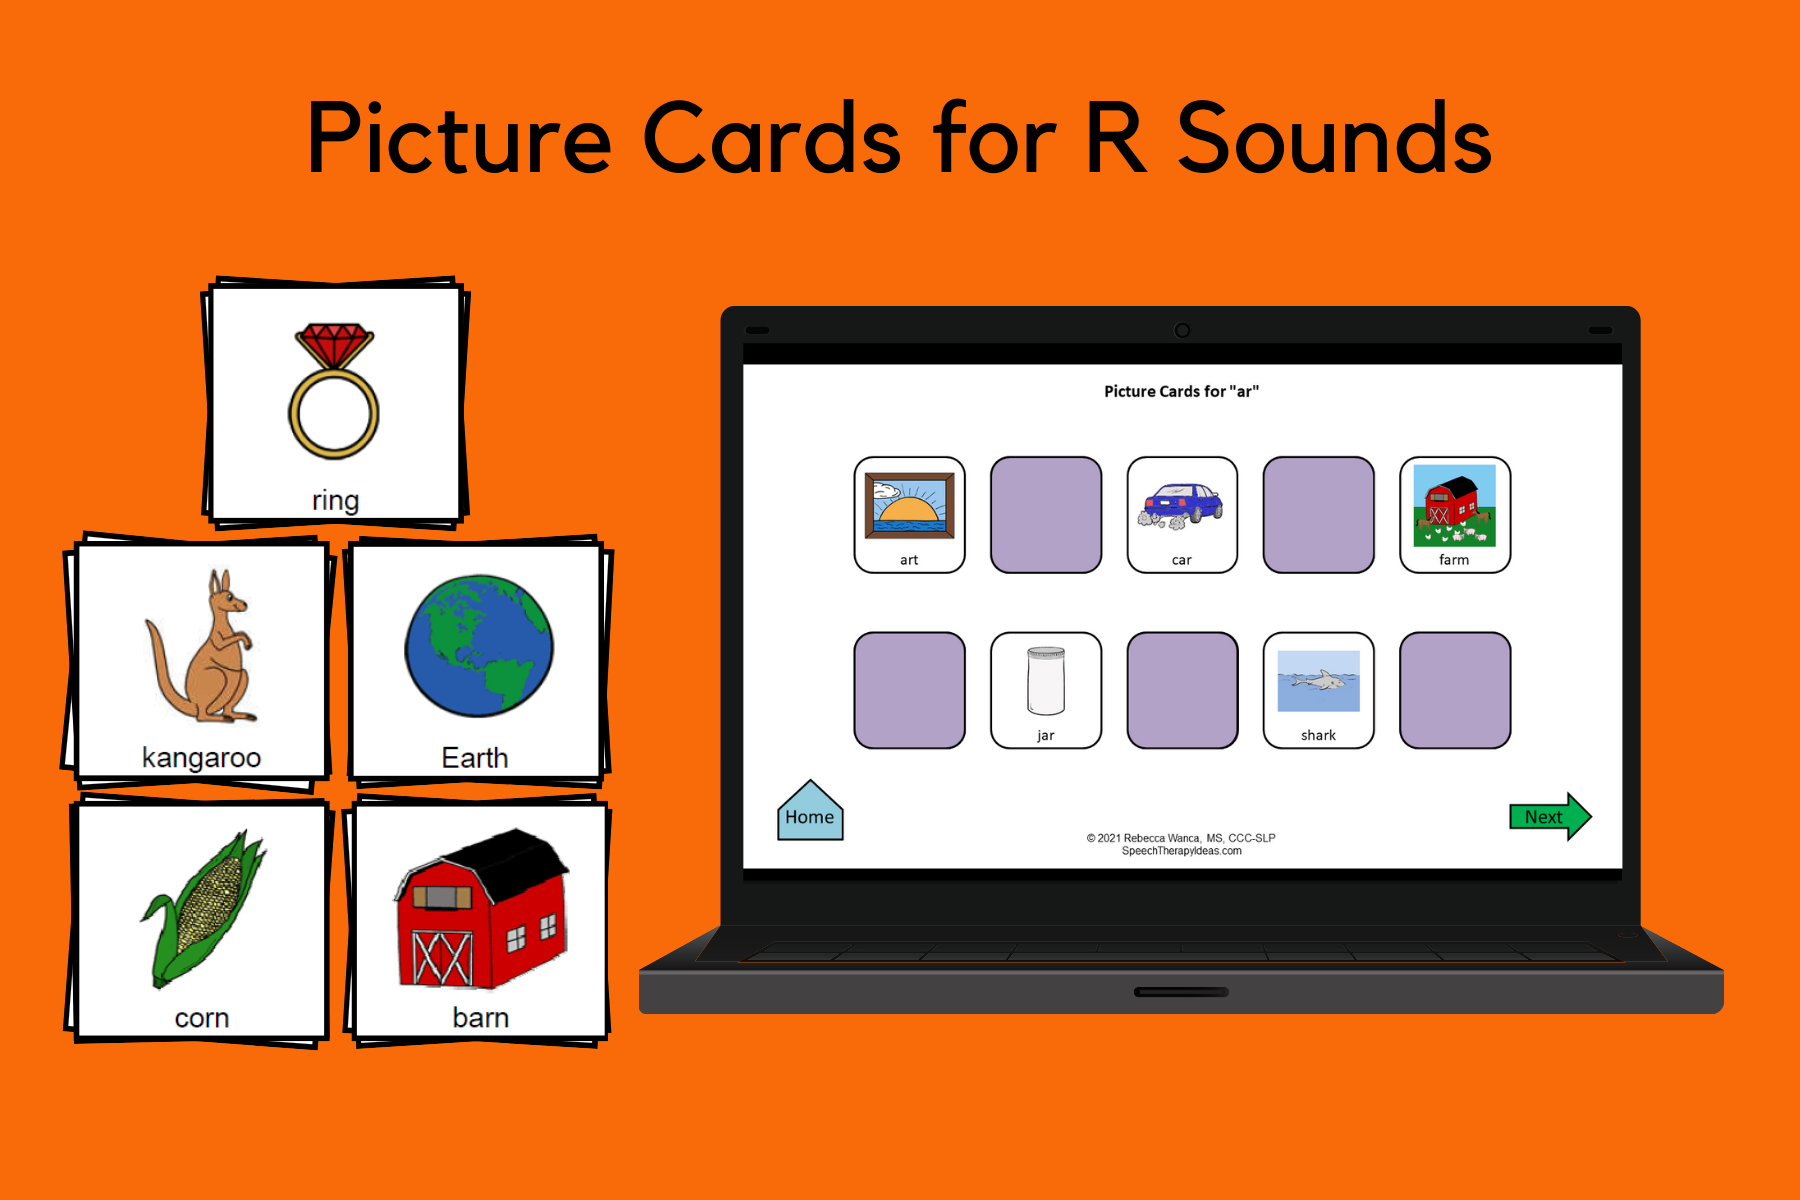 Picture Cards for R Sounds